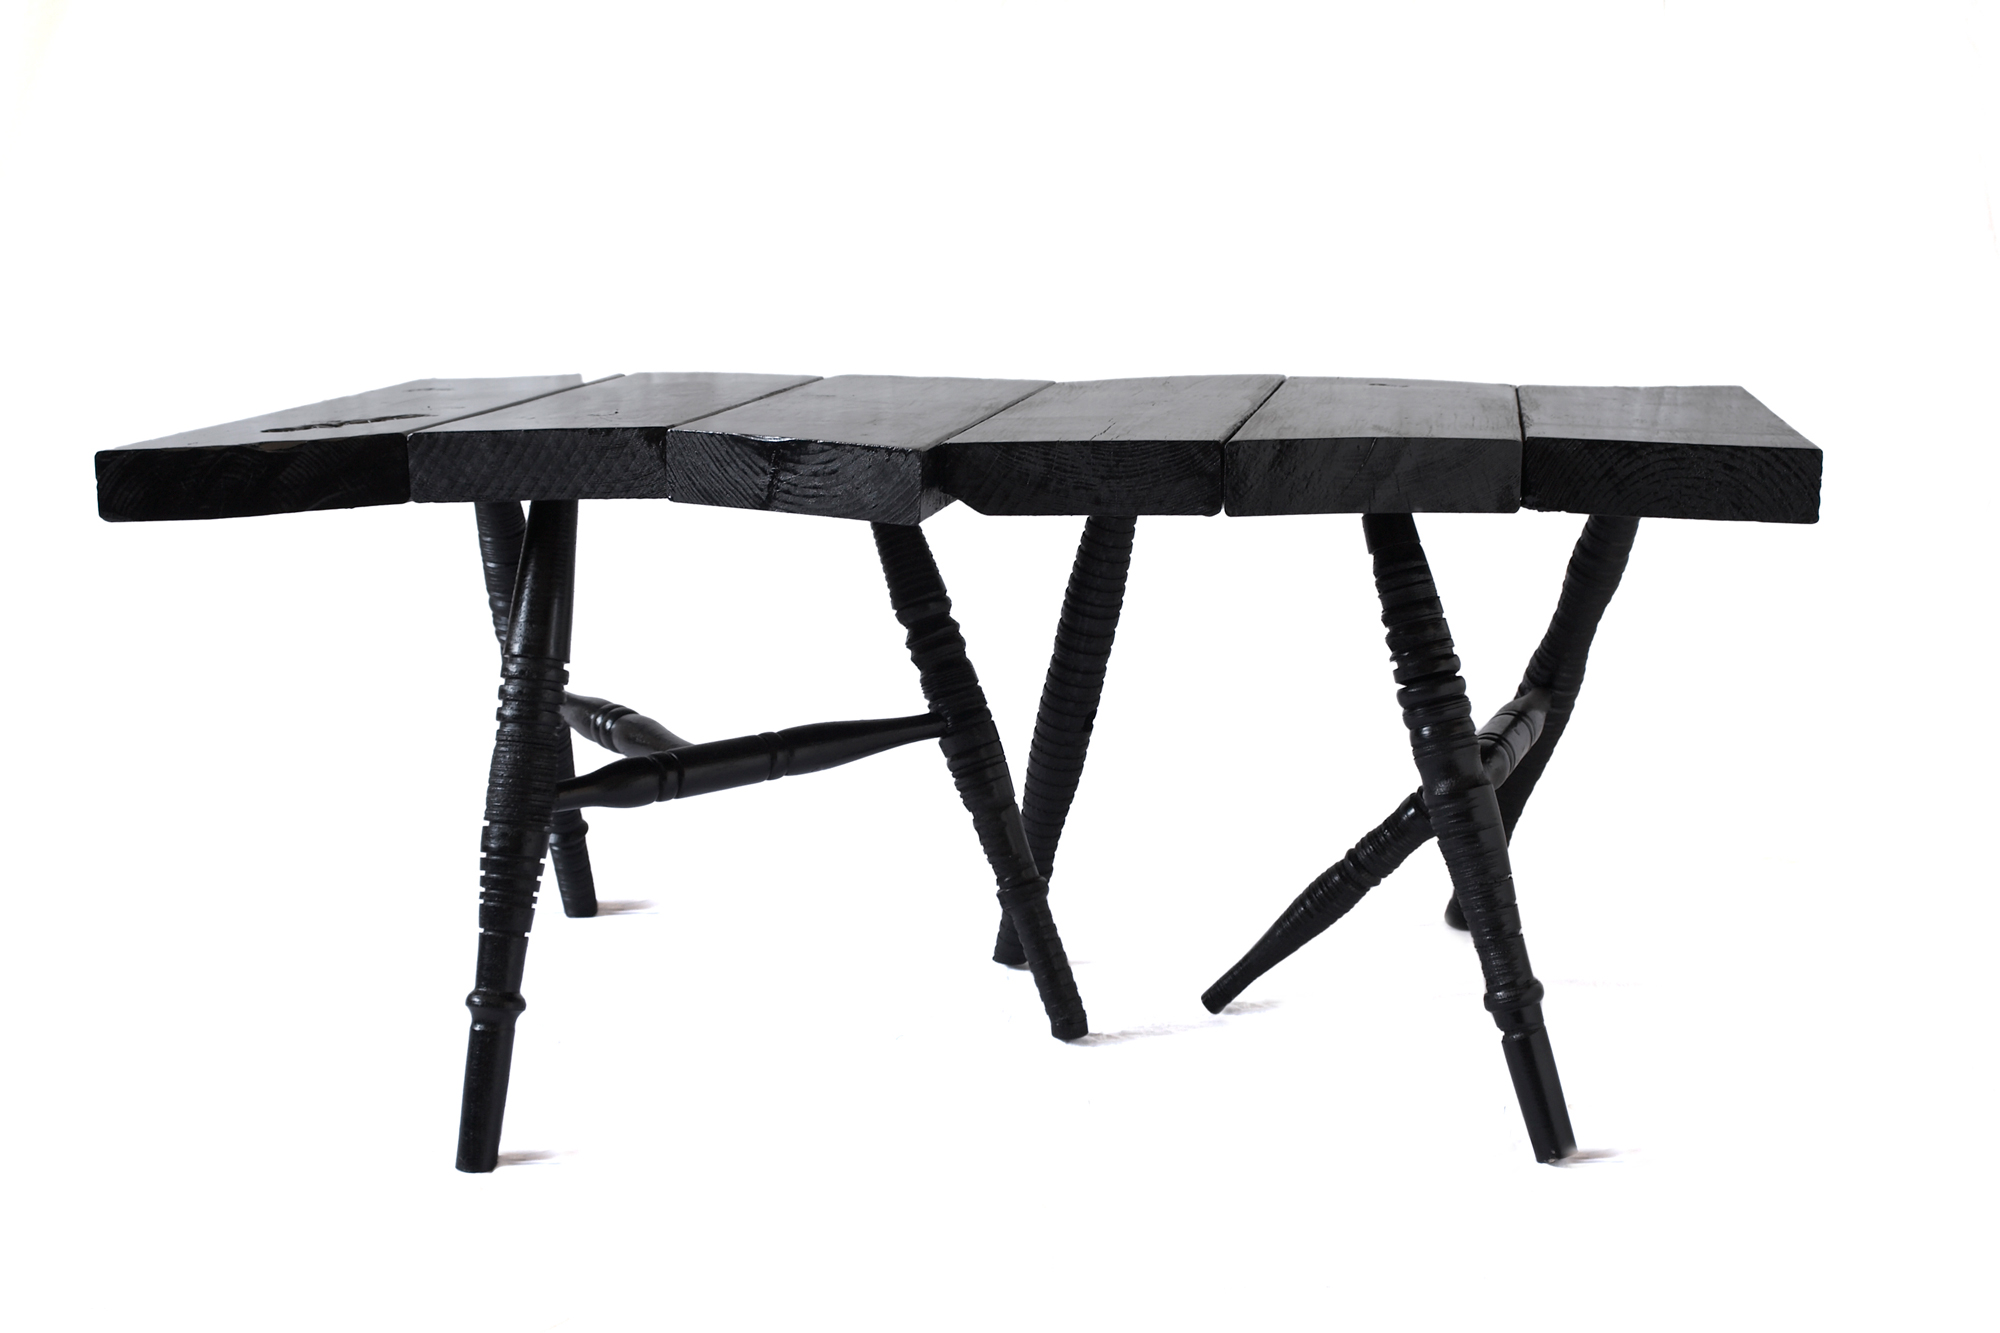 thomas table and chairs uk bleacher with backs furniture